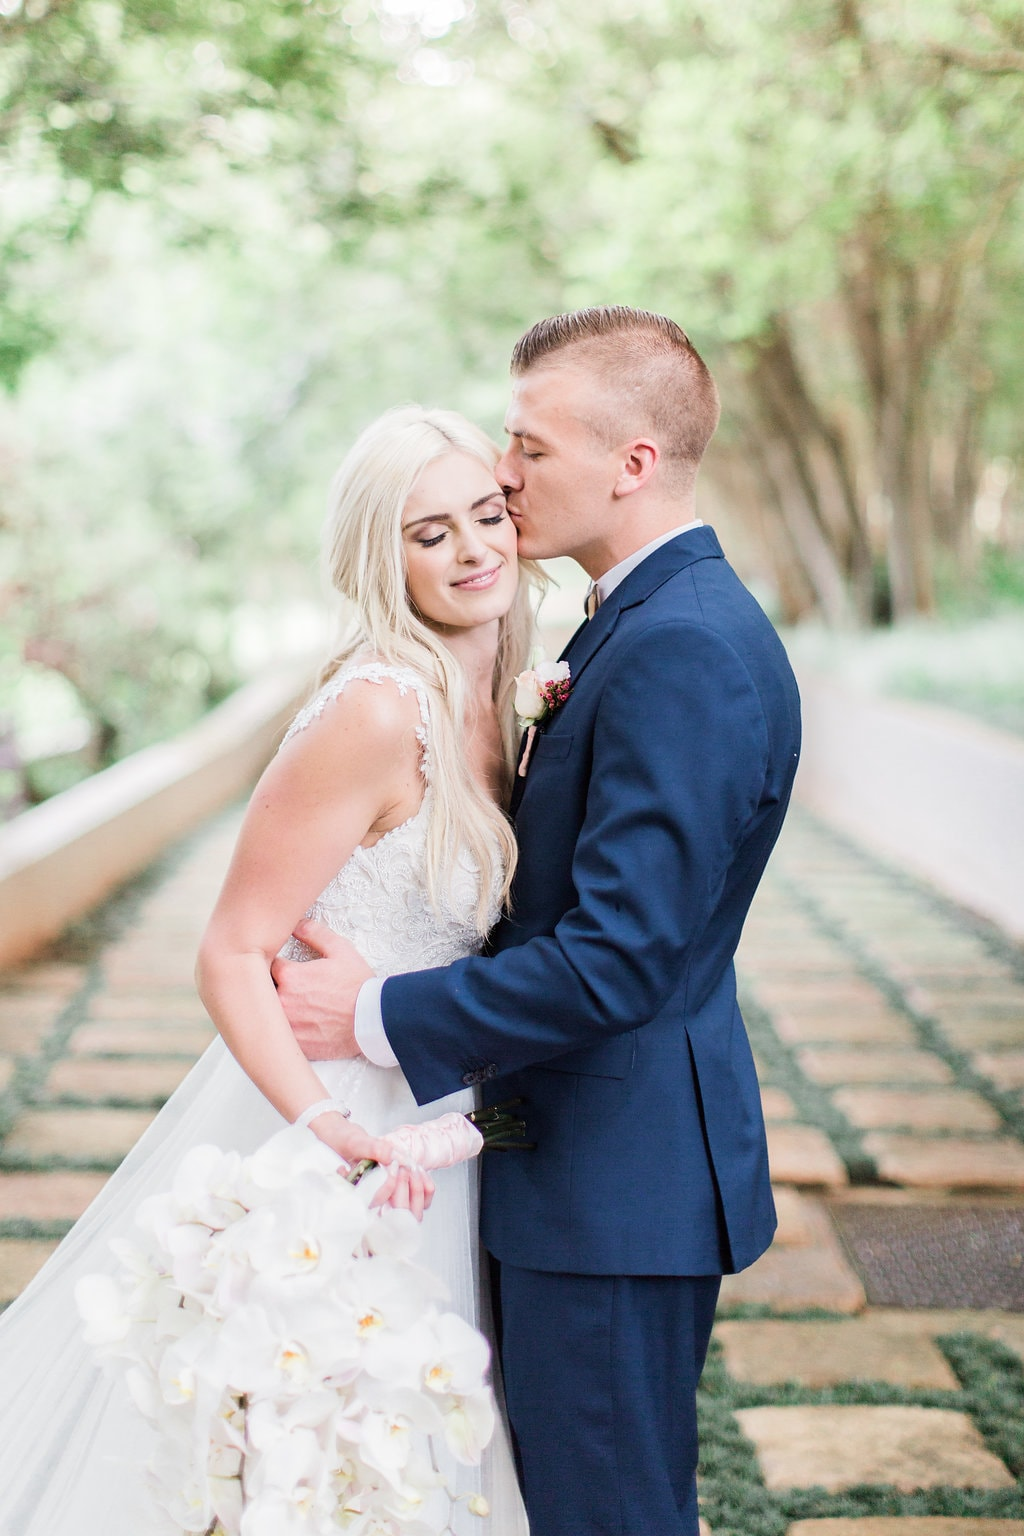 2319ca52a Pink and pastels can look impossibly chic, and if you have any doubt, this  beautiful, heartfelt wedding at Johannesburg's Memoire will show you the  way.